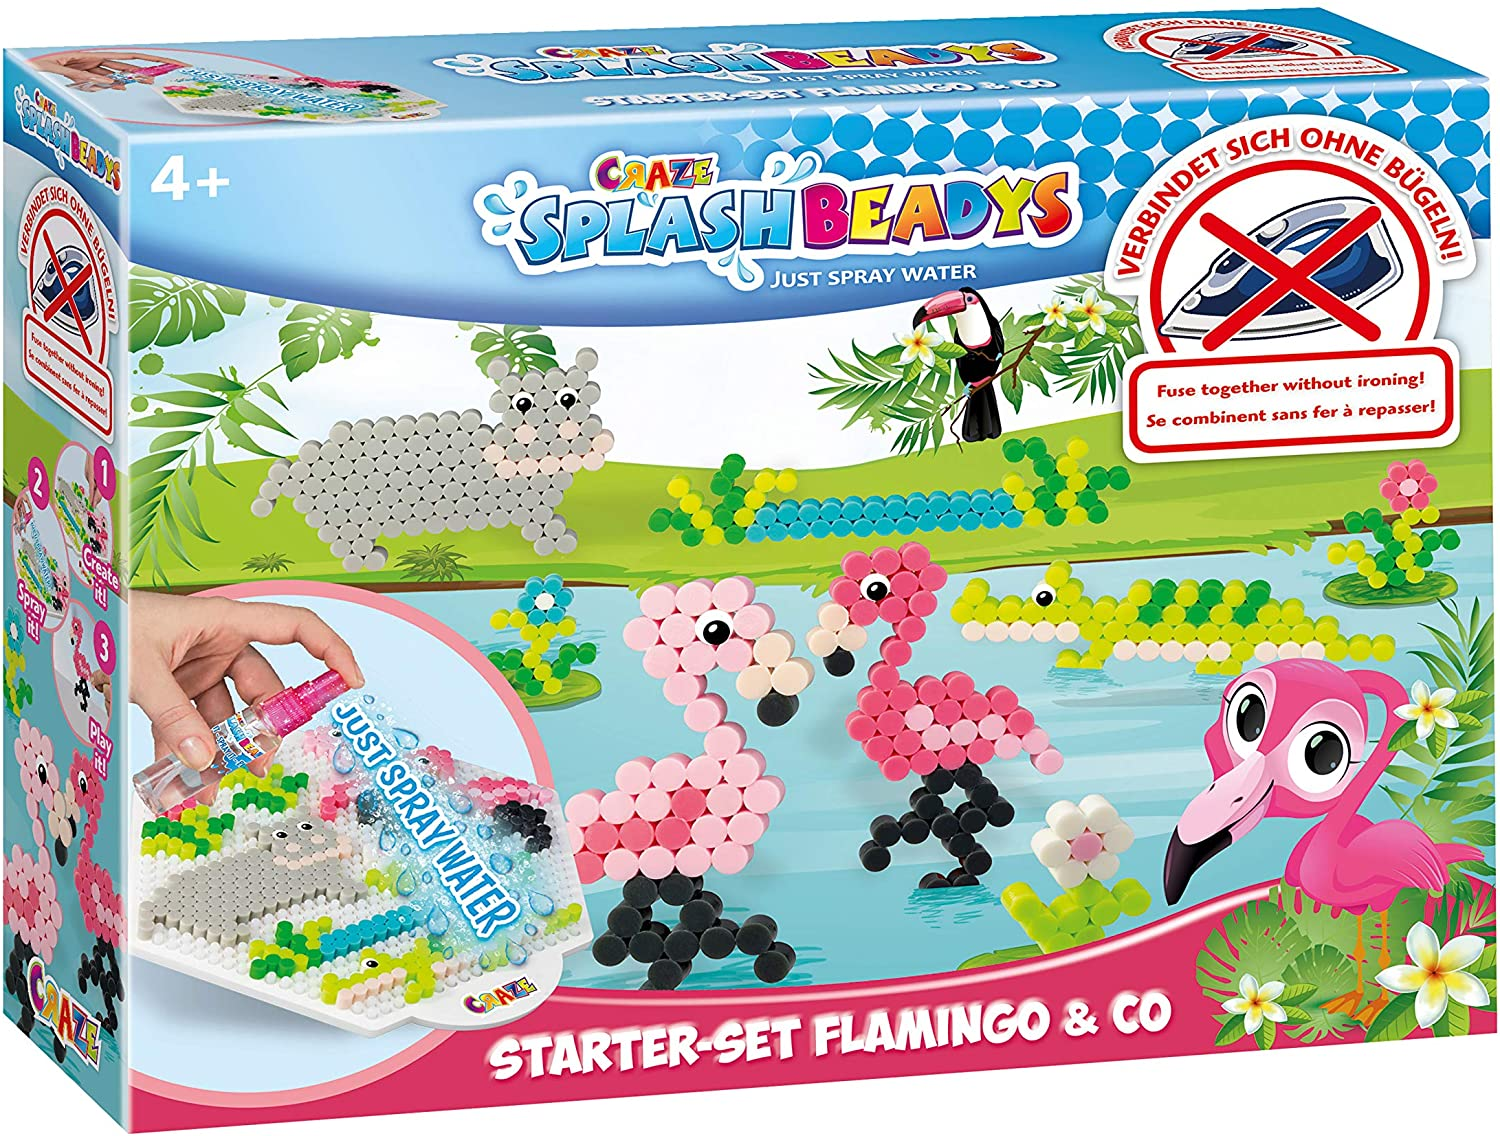 SPLASH BEADYS Flamingo & Co Starter-Set